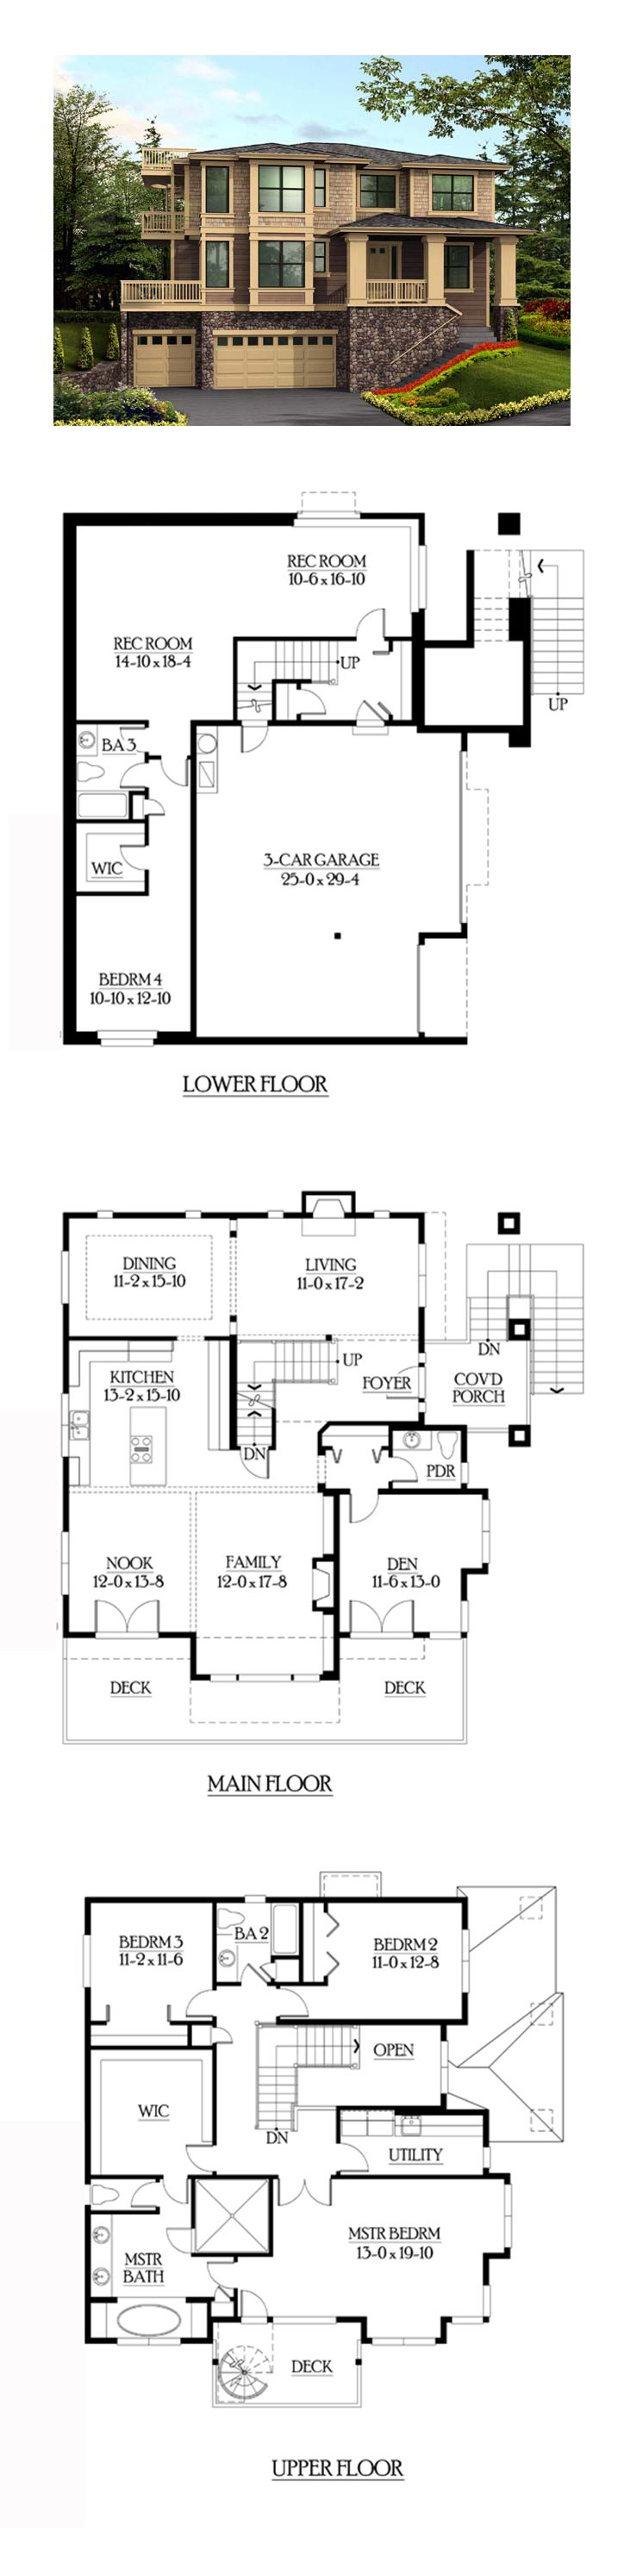 Best 25 Basement House Plans Ideas On Pinterest House